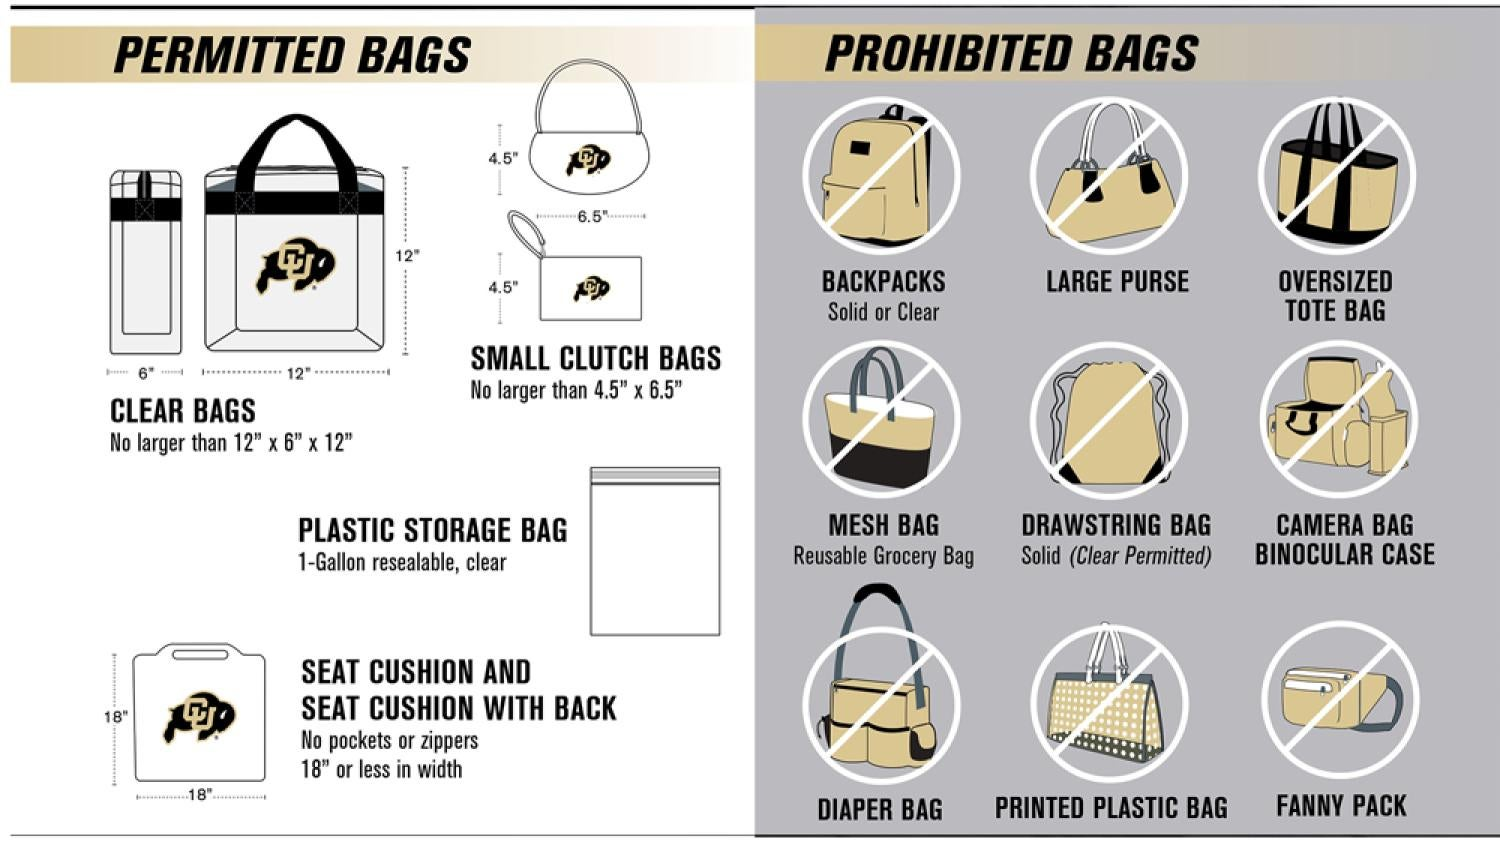 Image of items not allowed in Folsom Field